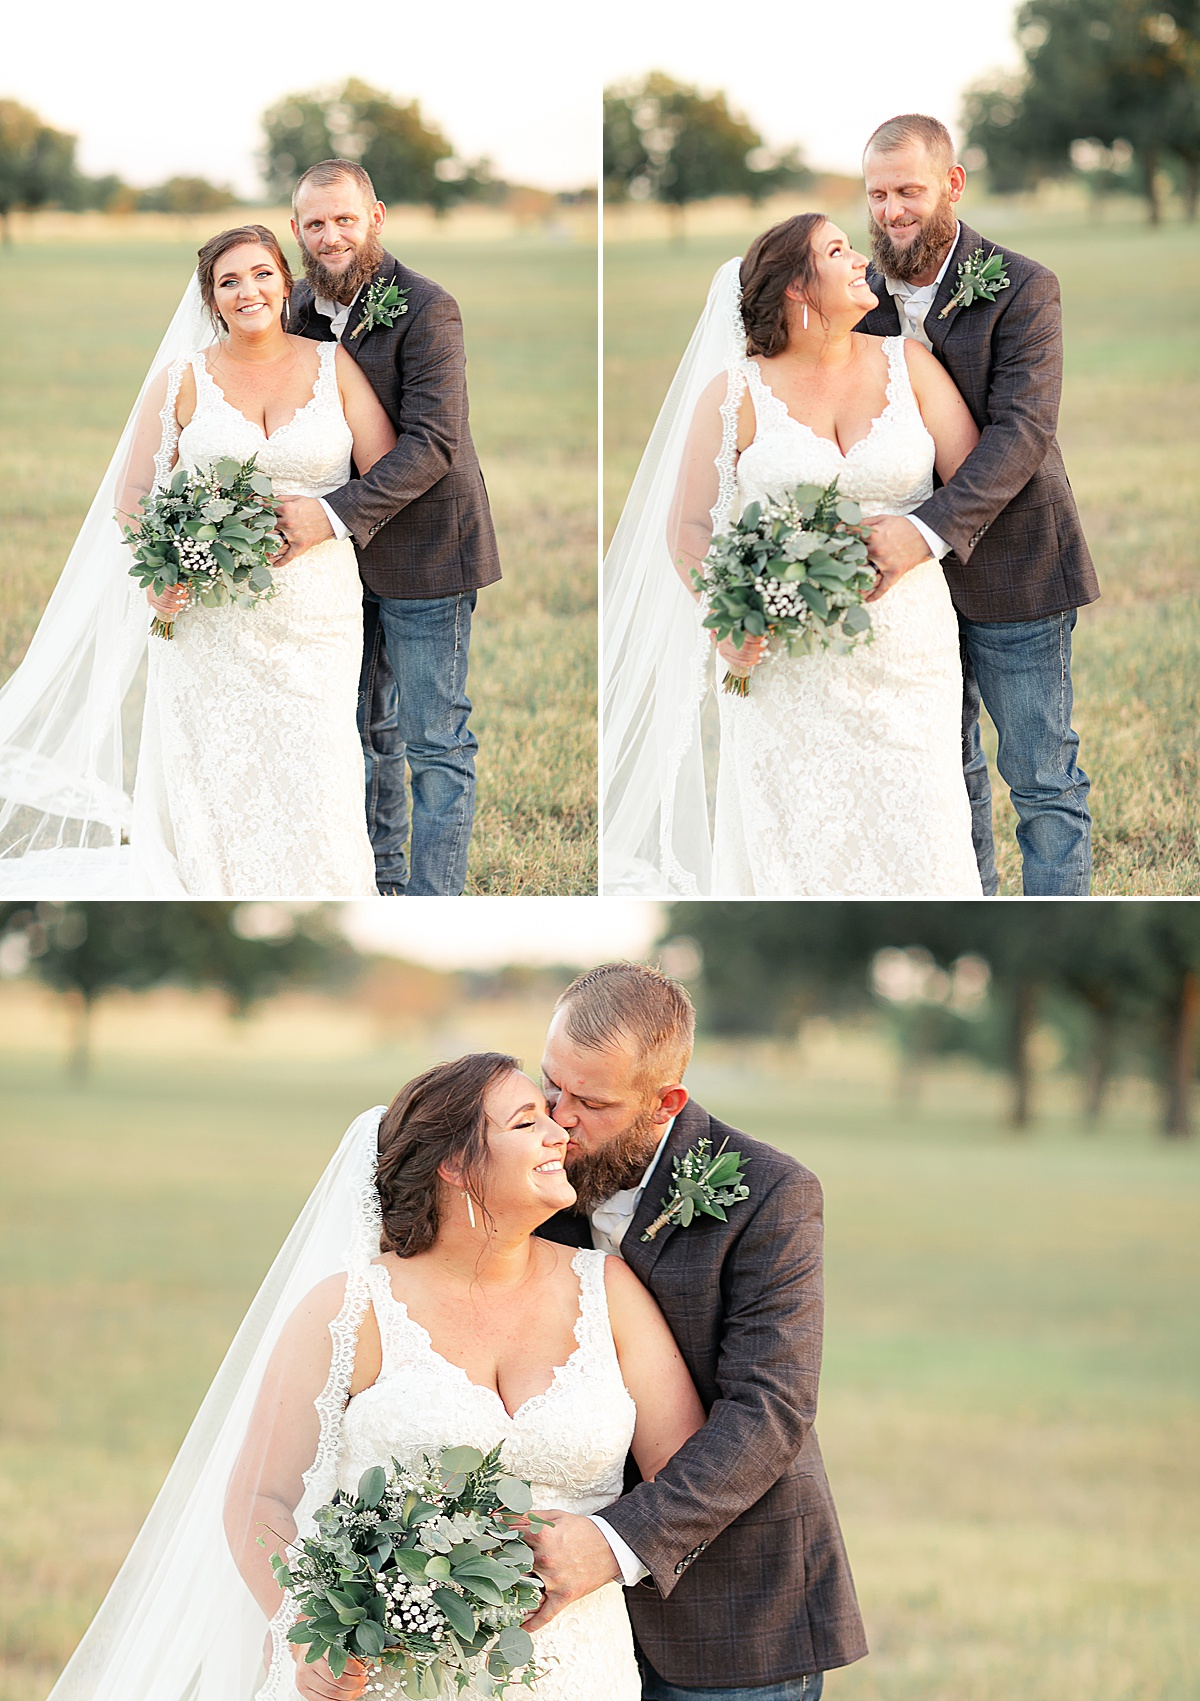 Rustic-Texas-Wedding-Hollow-Creek-Ranch-Carly-Barton-Photography_0092.jpg